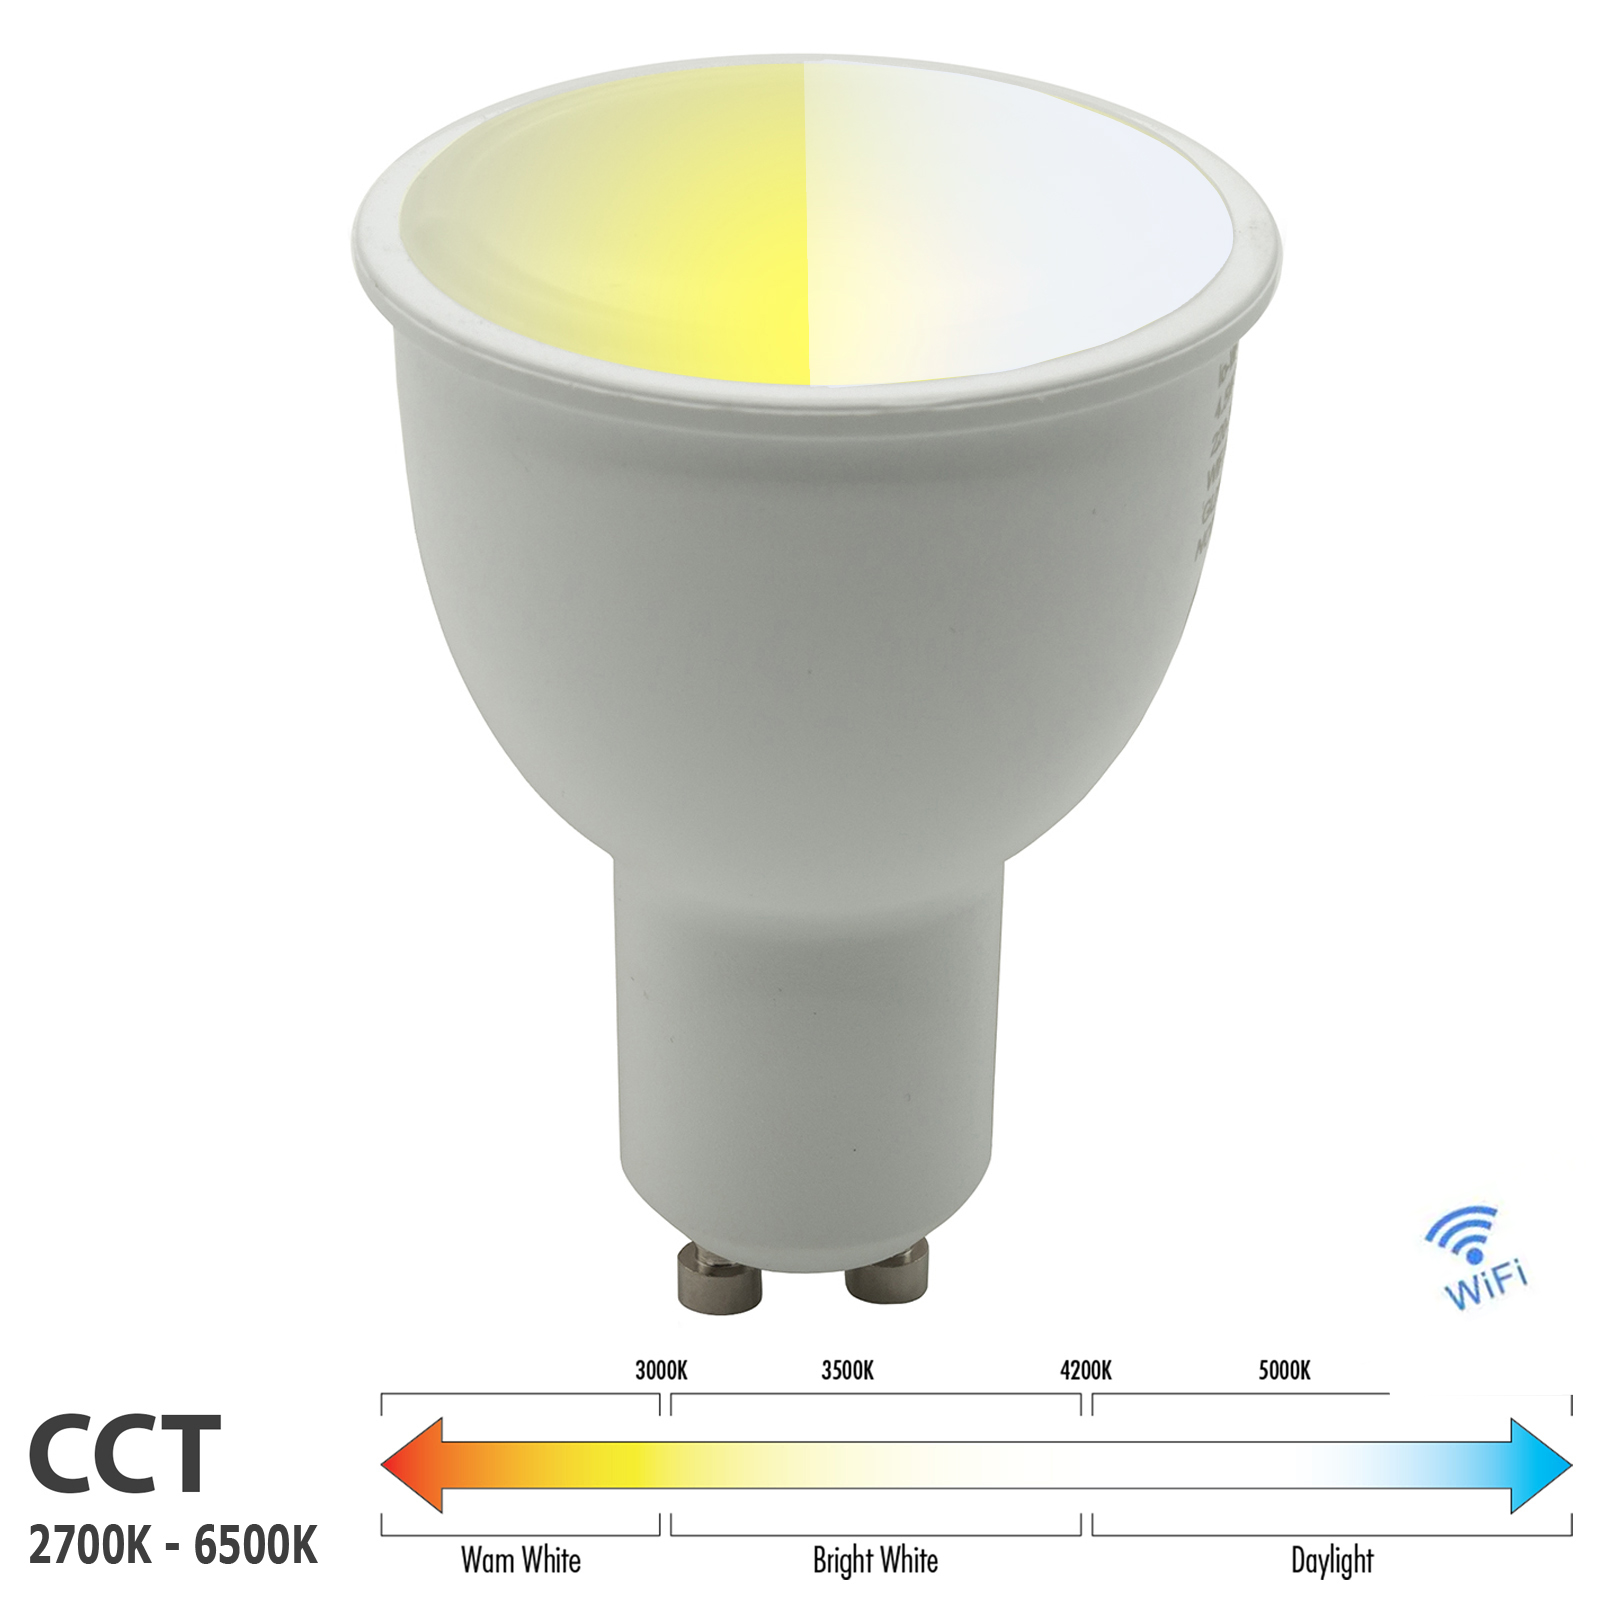 LED bulb GU10 spot light bulb smart WiFi dimmable 2700K to 6500K Alexa Google